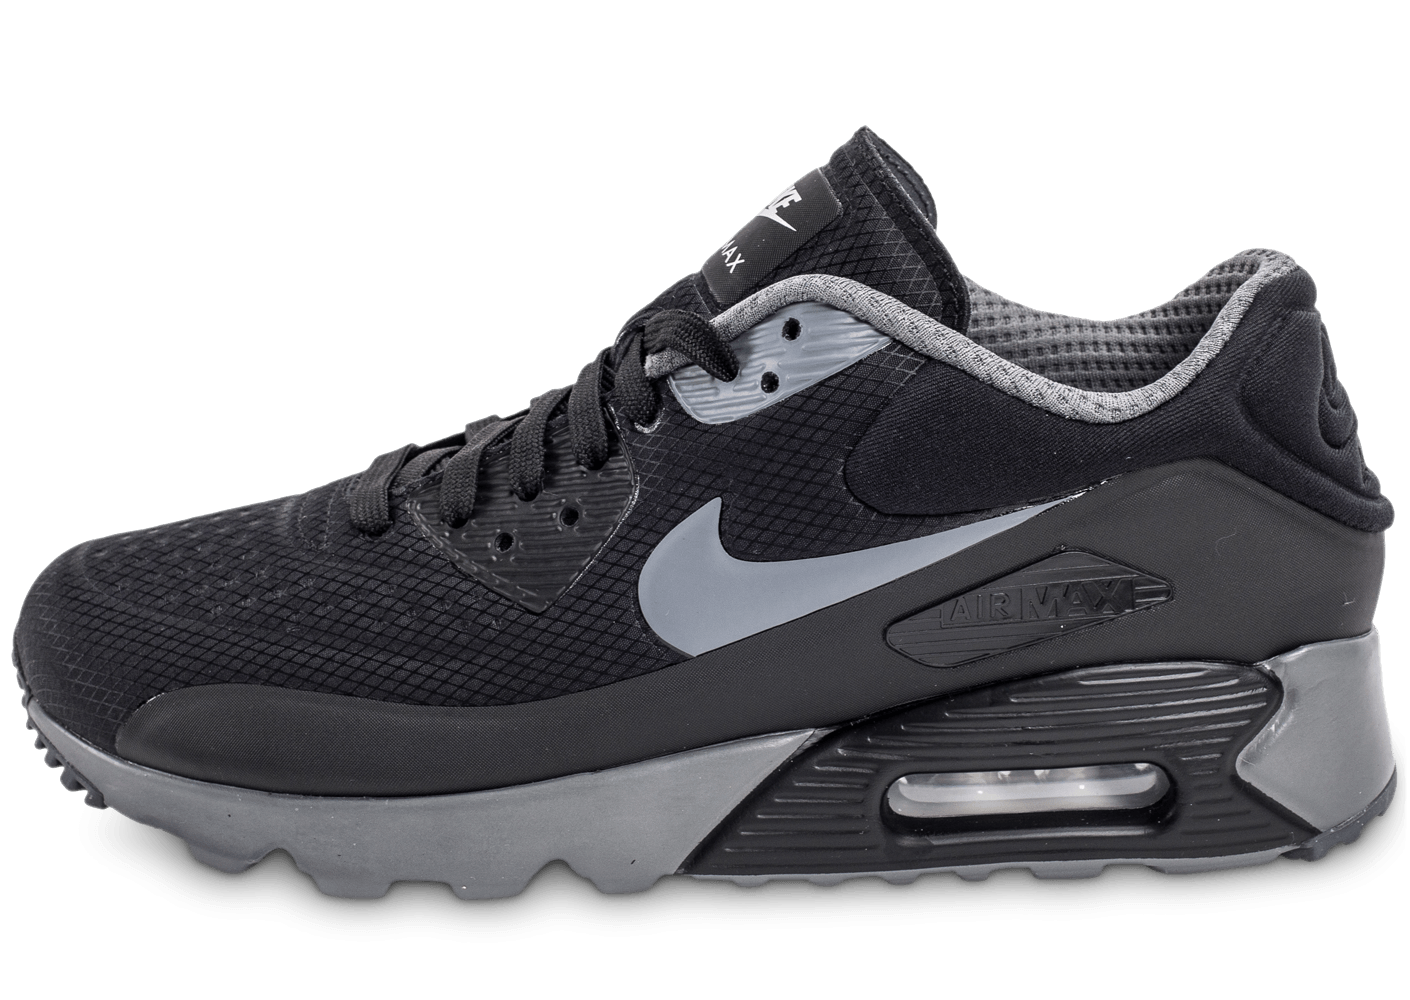 nike air max 90 ultra se noire et grise chaussures homme chausport. Black Bedroom Furniture Sets. Home Design Ideas